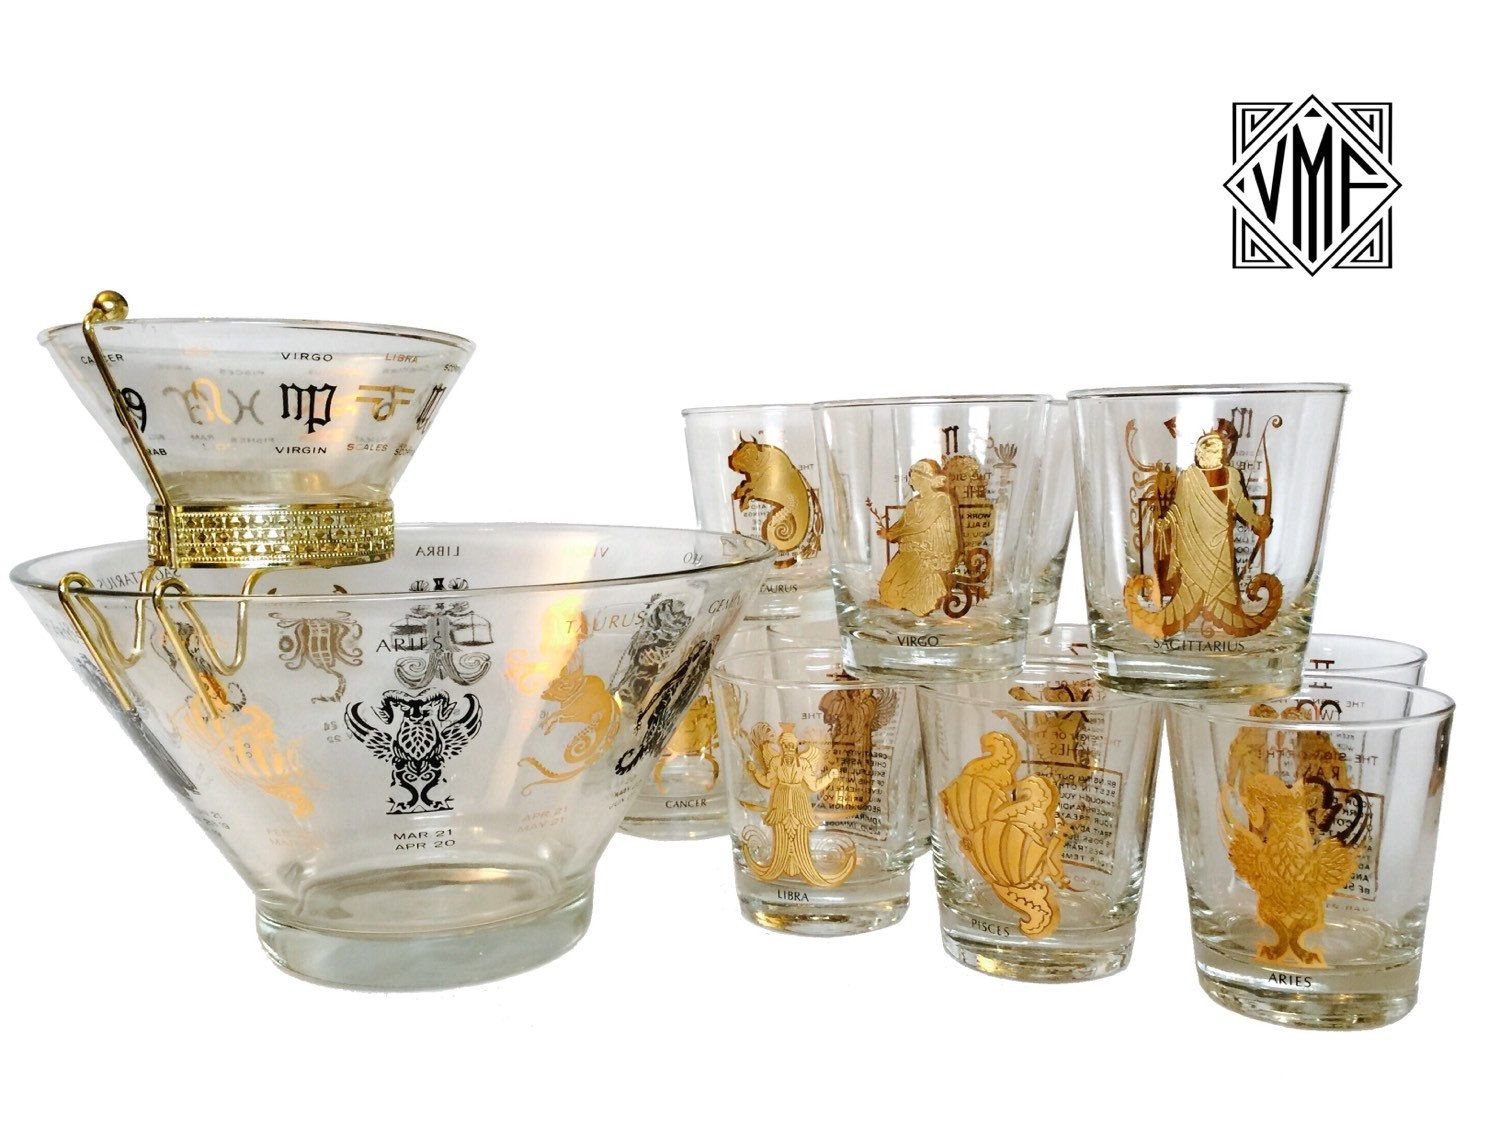 Superb MINT Vintage Mad Men Barware 1960s Anchor Hocking Zodiac Cocktail Set With  12 Rocks Glasses, Chip And Dip Set, Hollywood Regency, Astrology